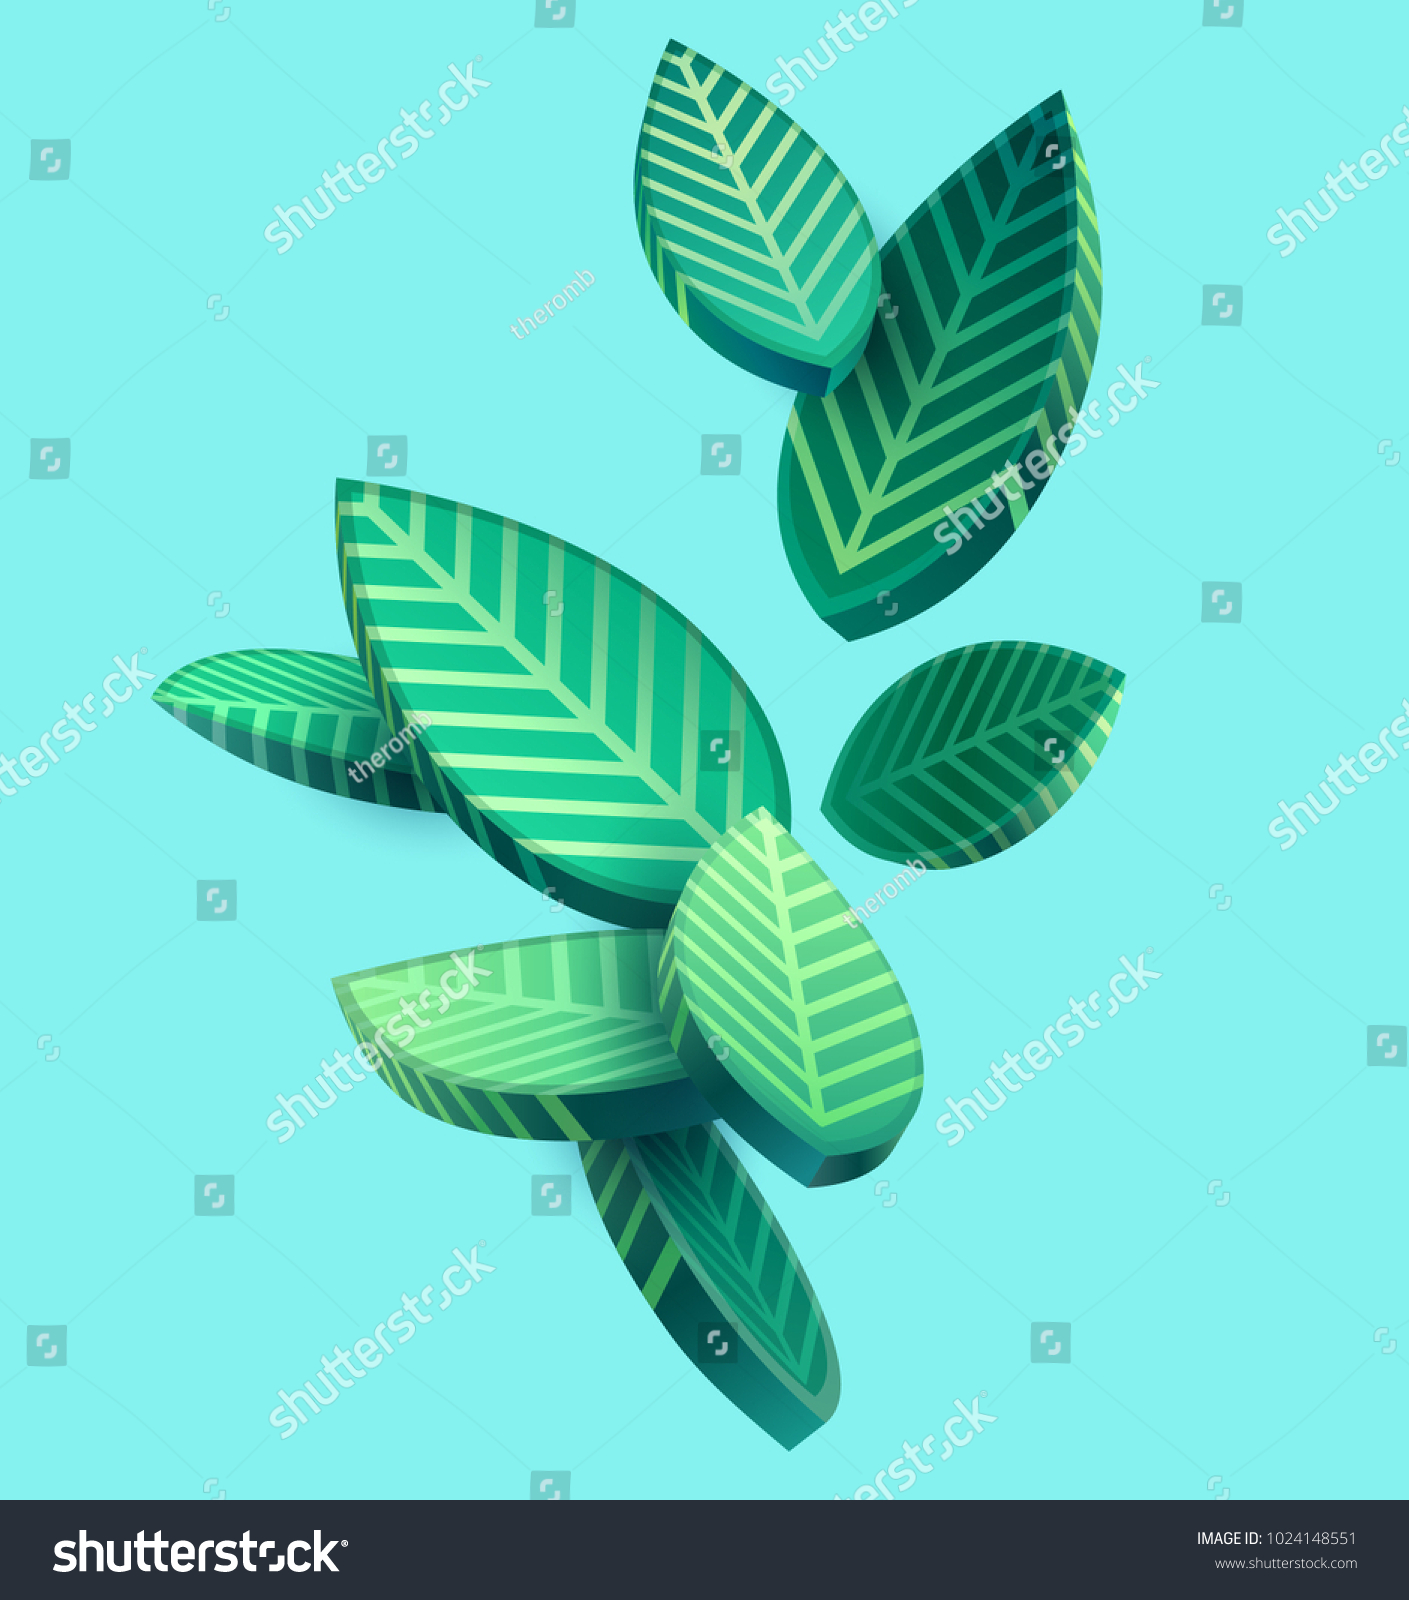 Composition of 3D stylized leaves  #1024148551